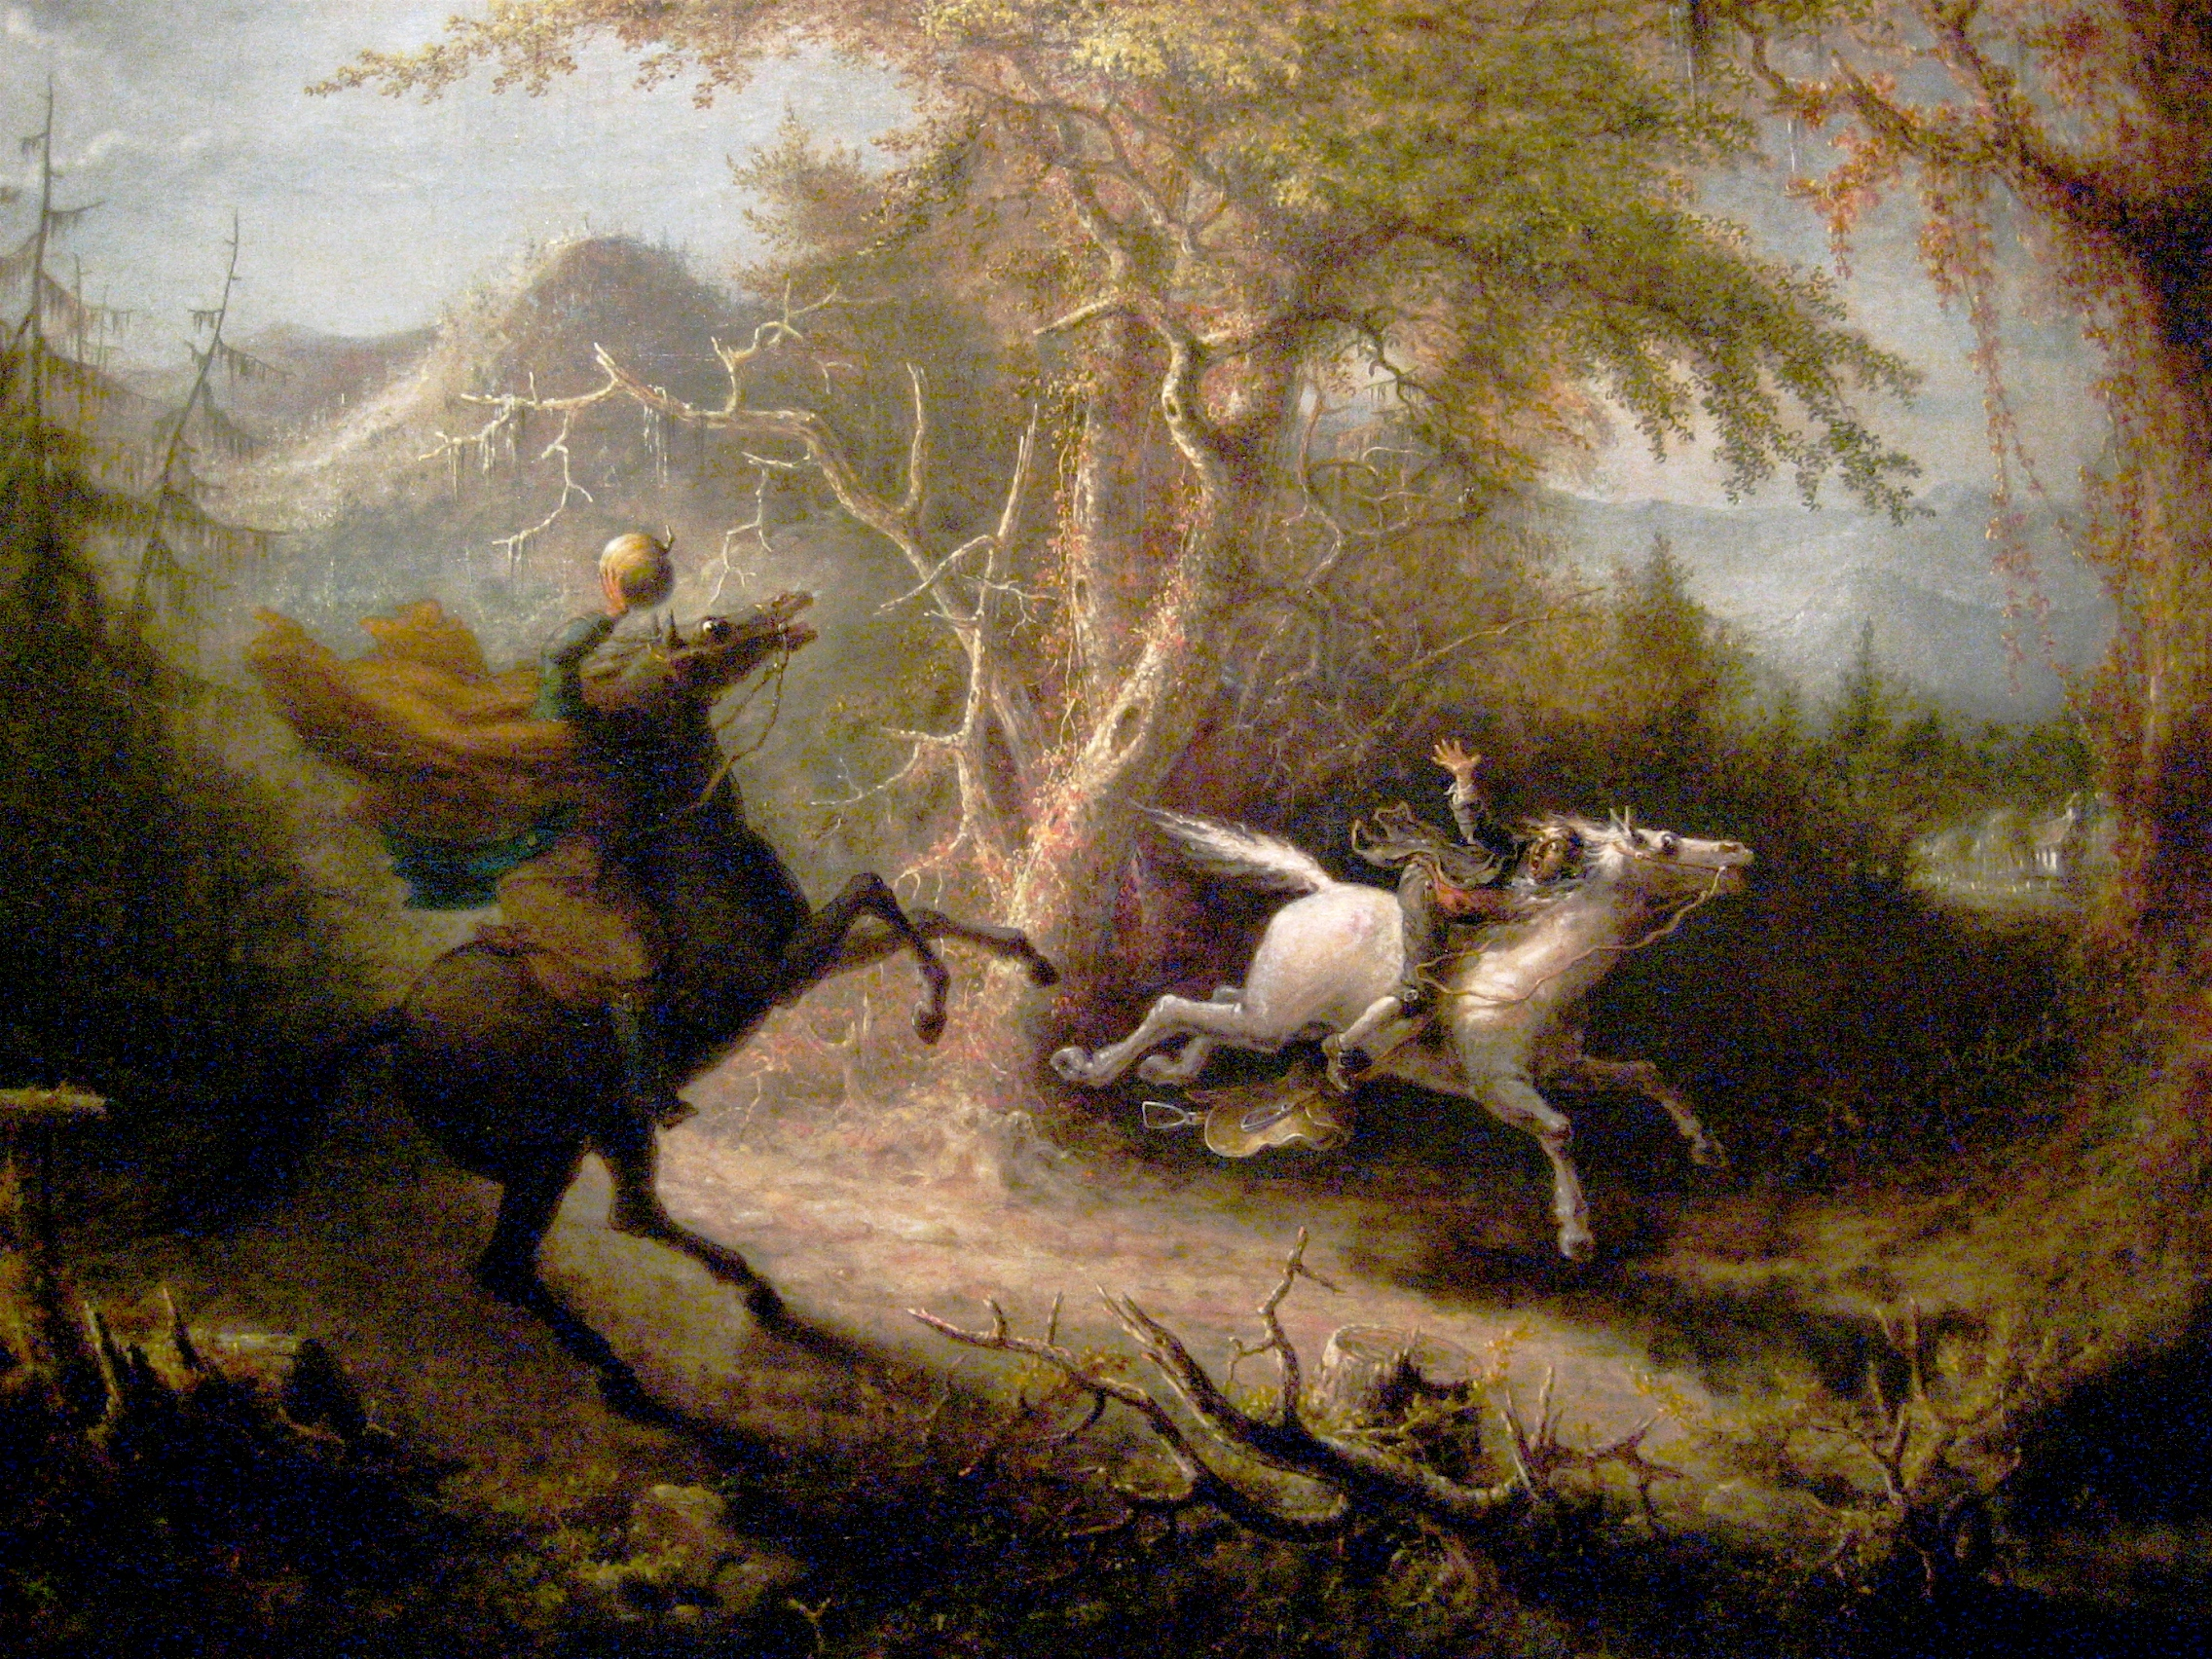 John Quidor, The Headless Horseman Pursuing Ichabod Crane, Washington Irving, jinete sin cabeza